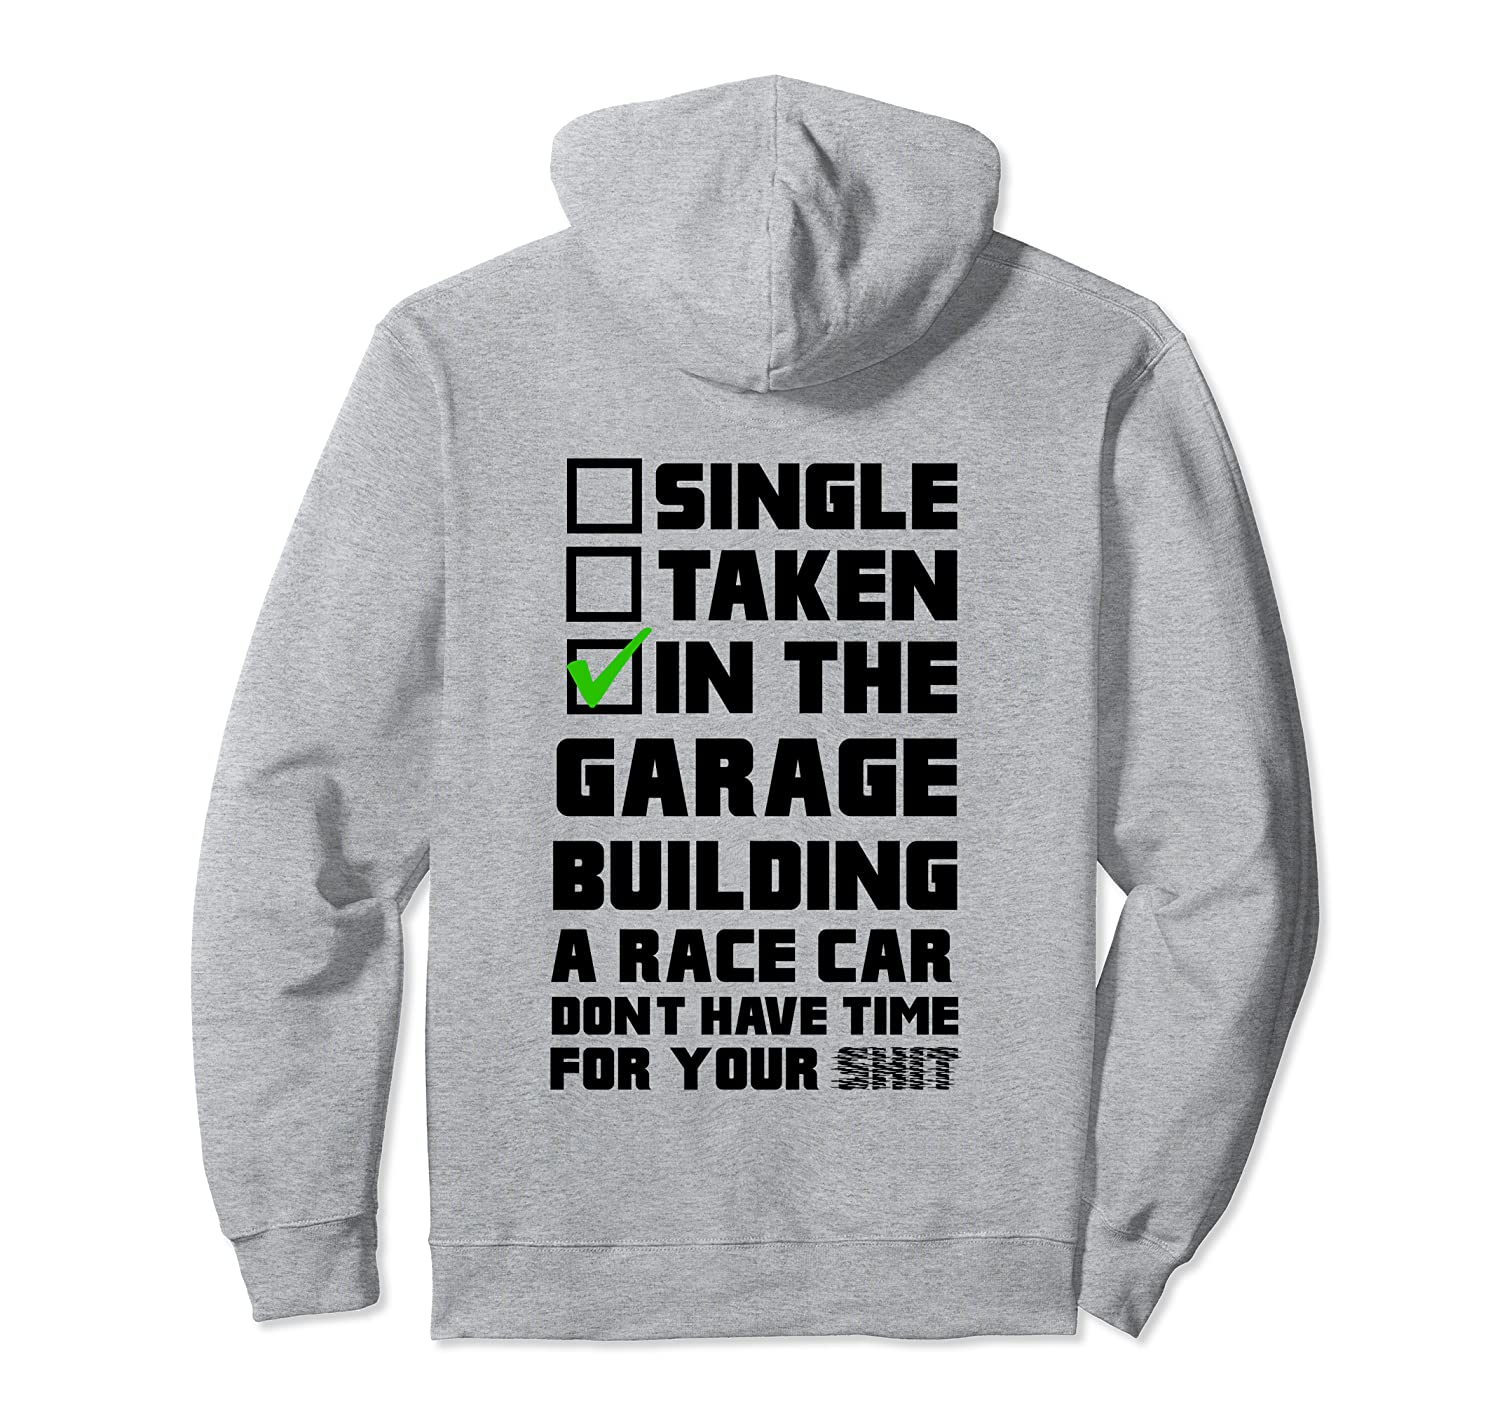 Amazon com: Single Taken In The Garage Building a Race Car Hoodie